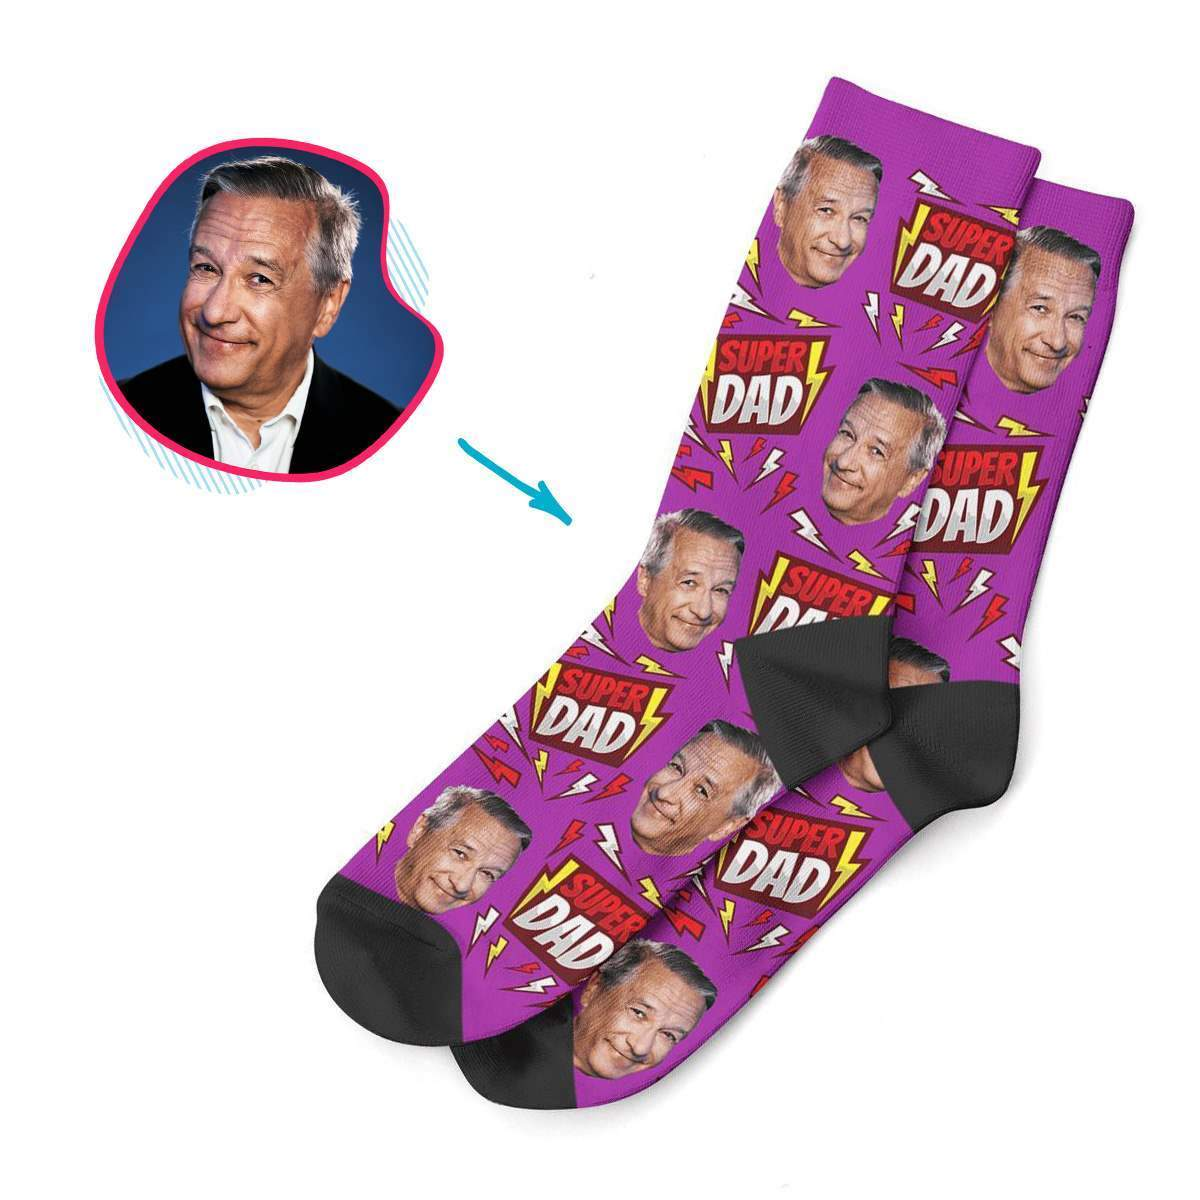 purple Super Dad socks personalized with photo of face printed on them